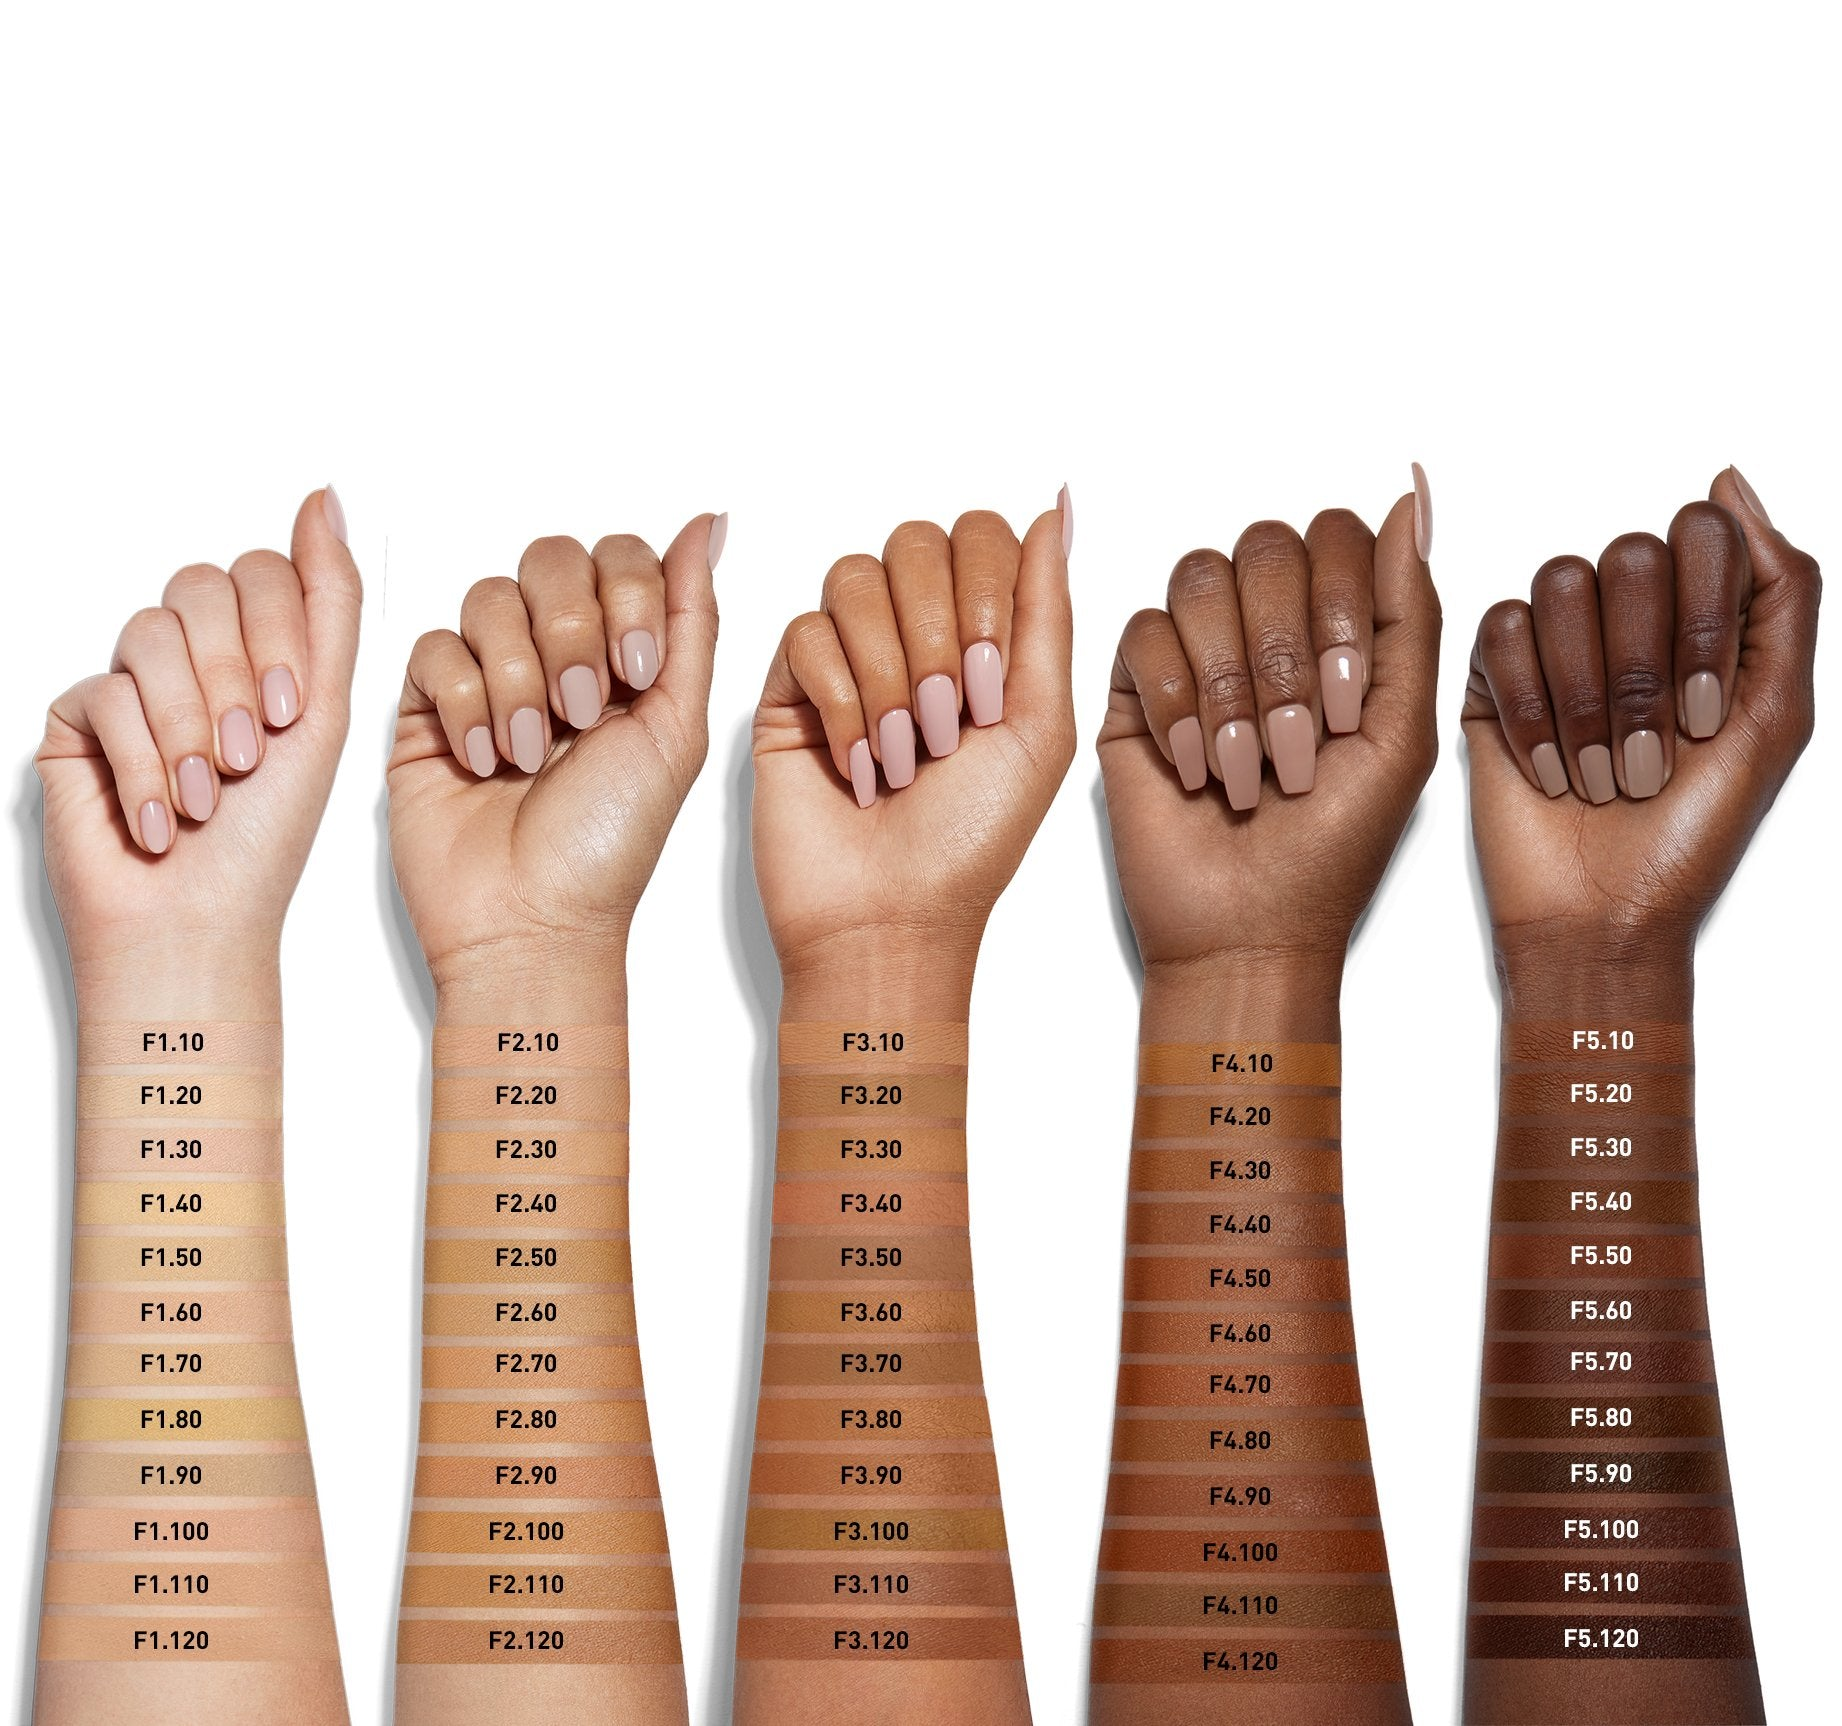 FLUIDITY FULL-COVERAGE FOUNDATION - F3.80 ARM SWATCHES